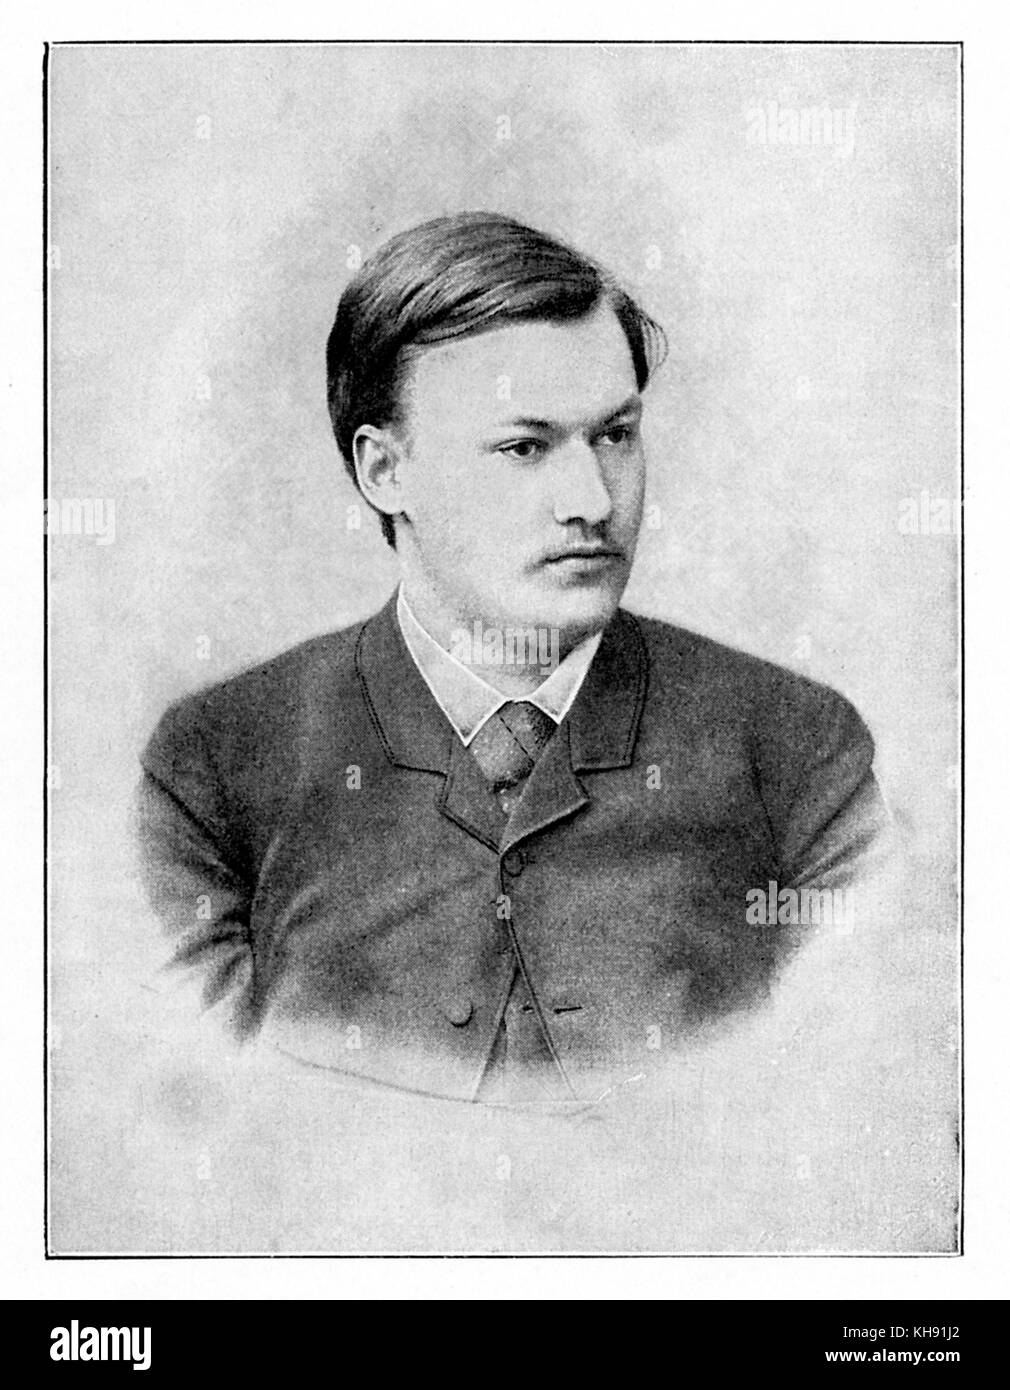 Alexander Glazunov - portrait of Russian composer, 10th August 1865 - 21st March 1936 - Stock Image